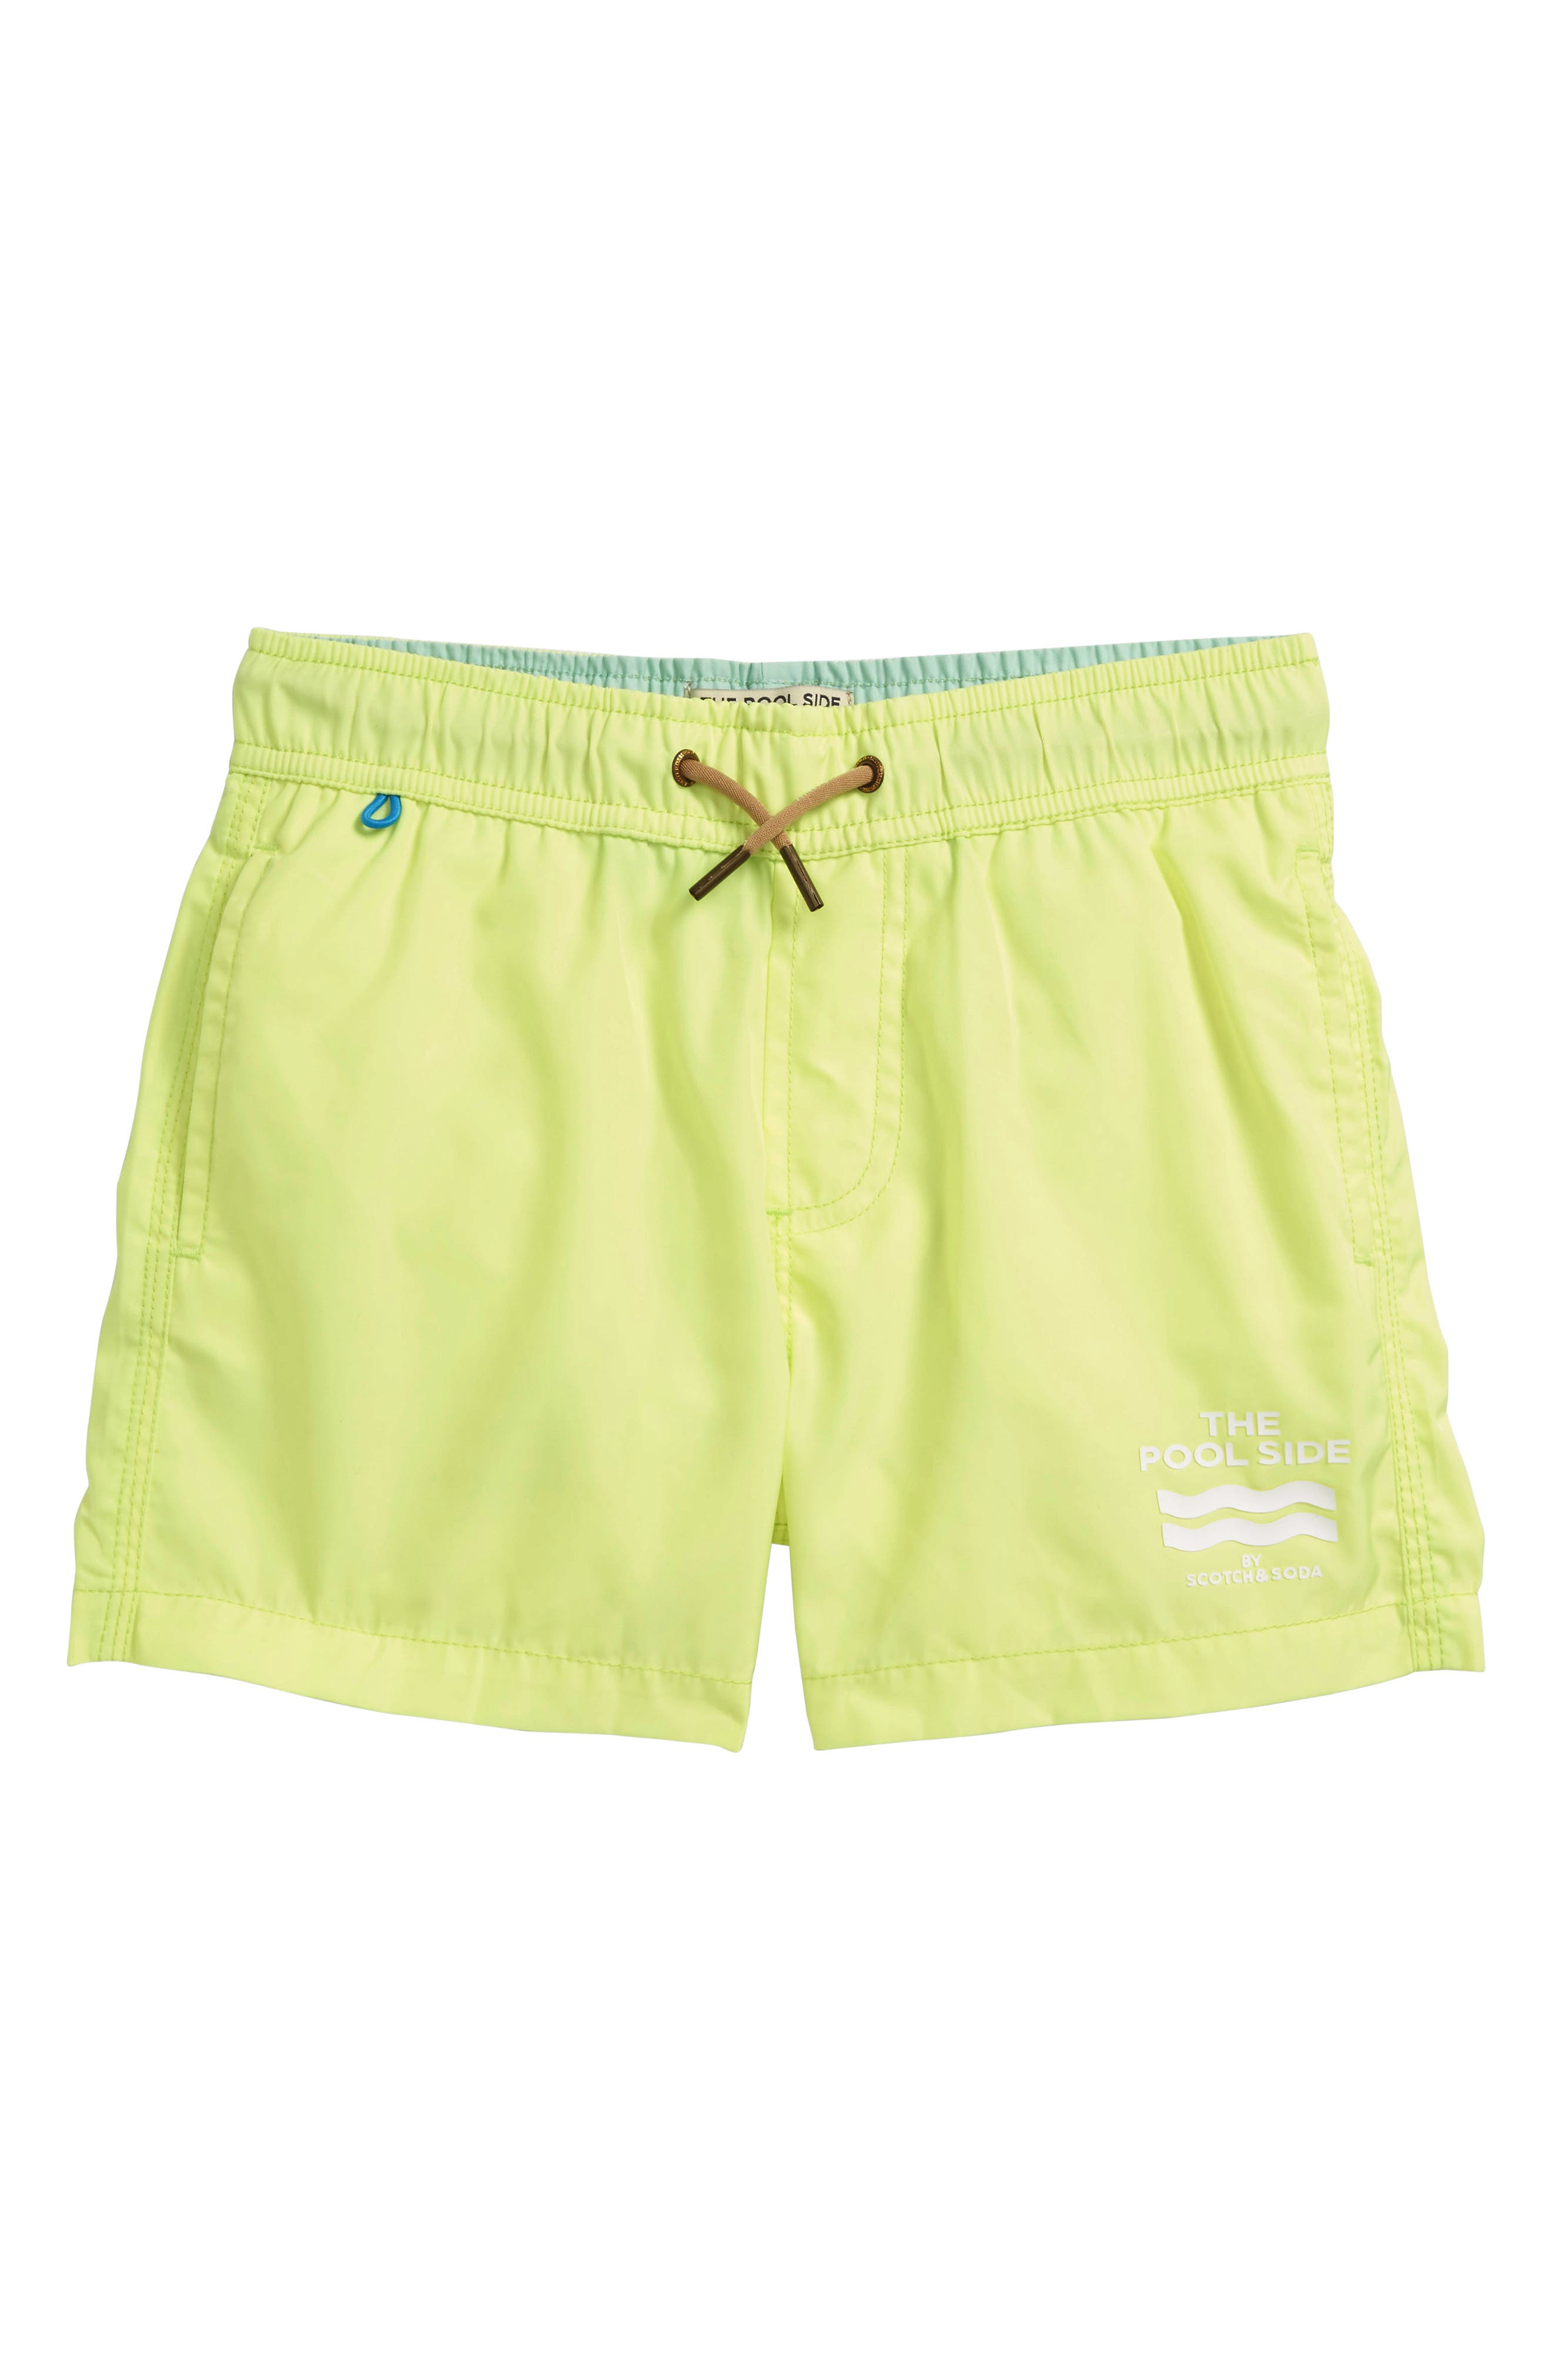 Swim Trunks,                         Main,                         color, Citrine